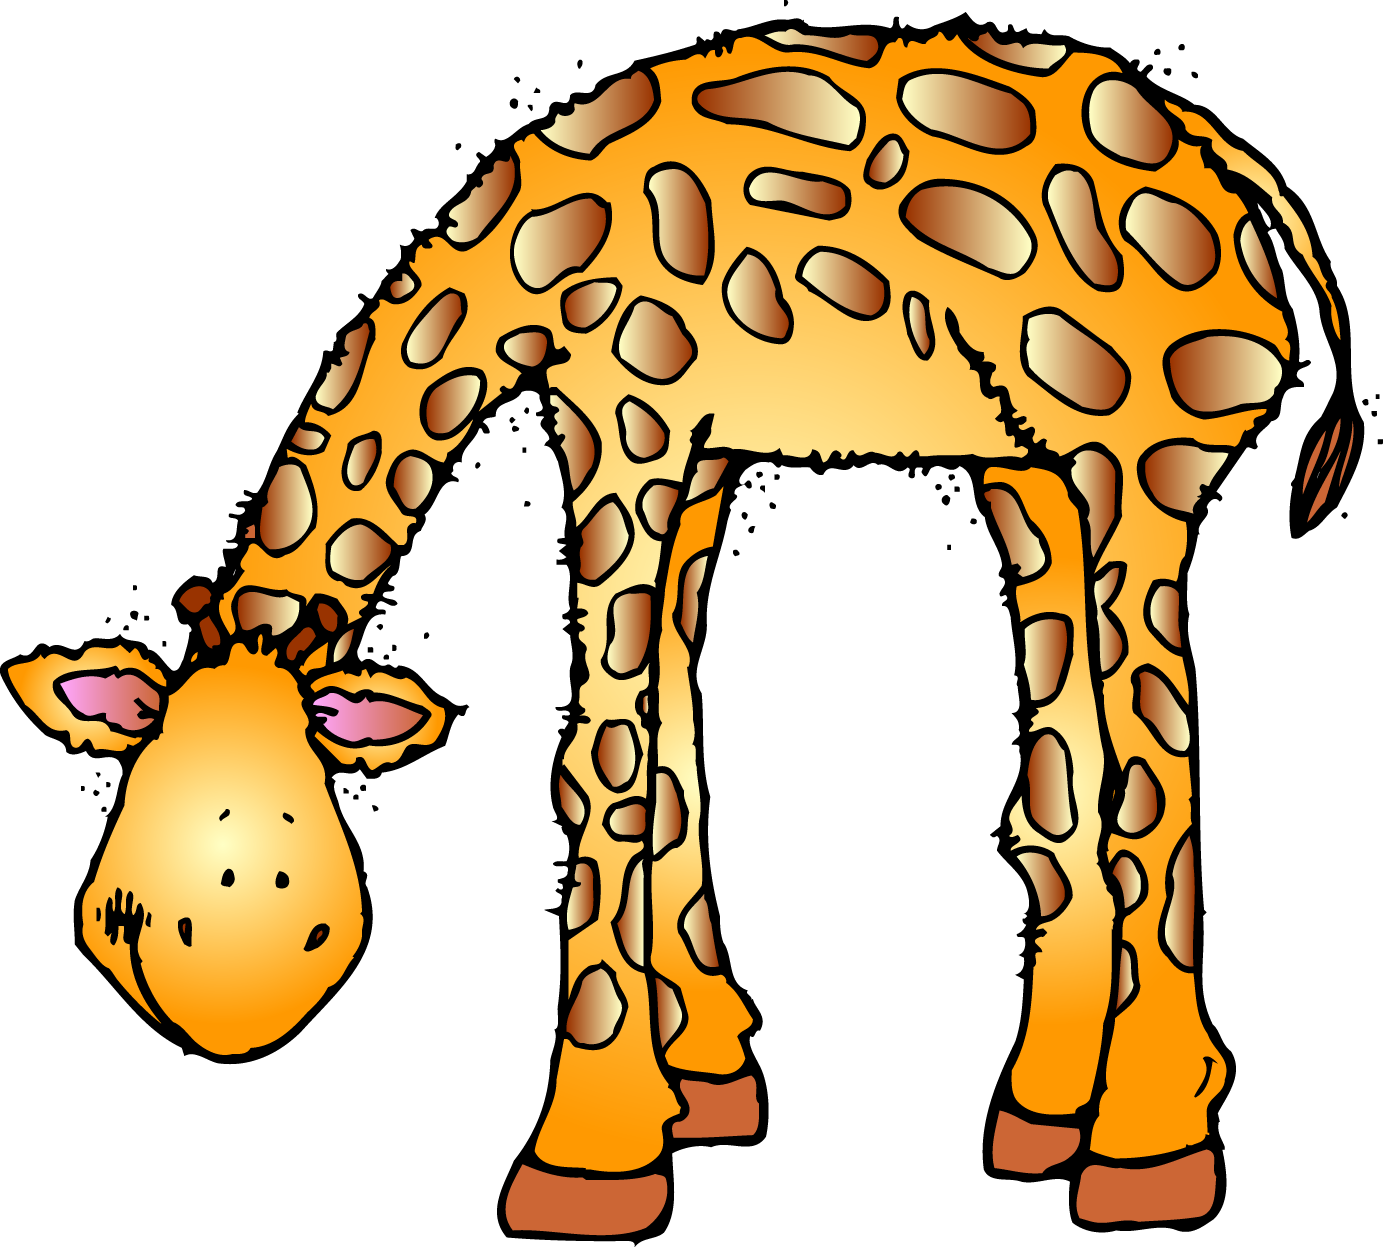 Free animal download clip. Zoo clipart english school clip art download